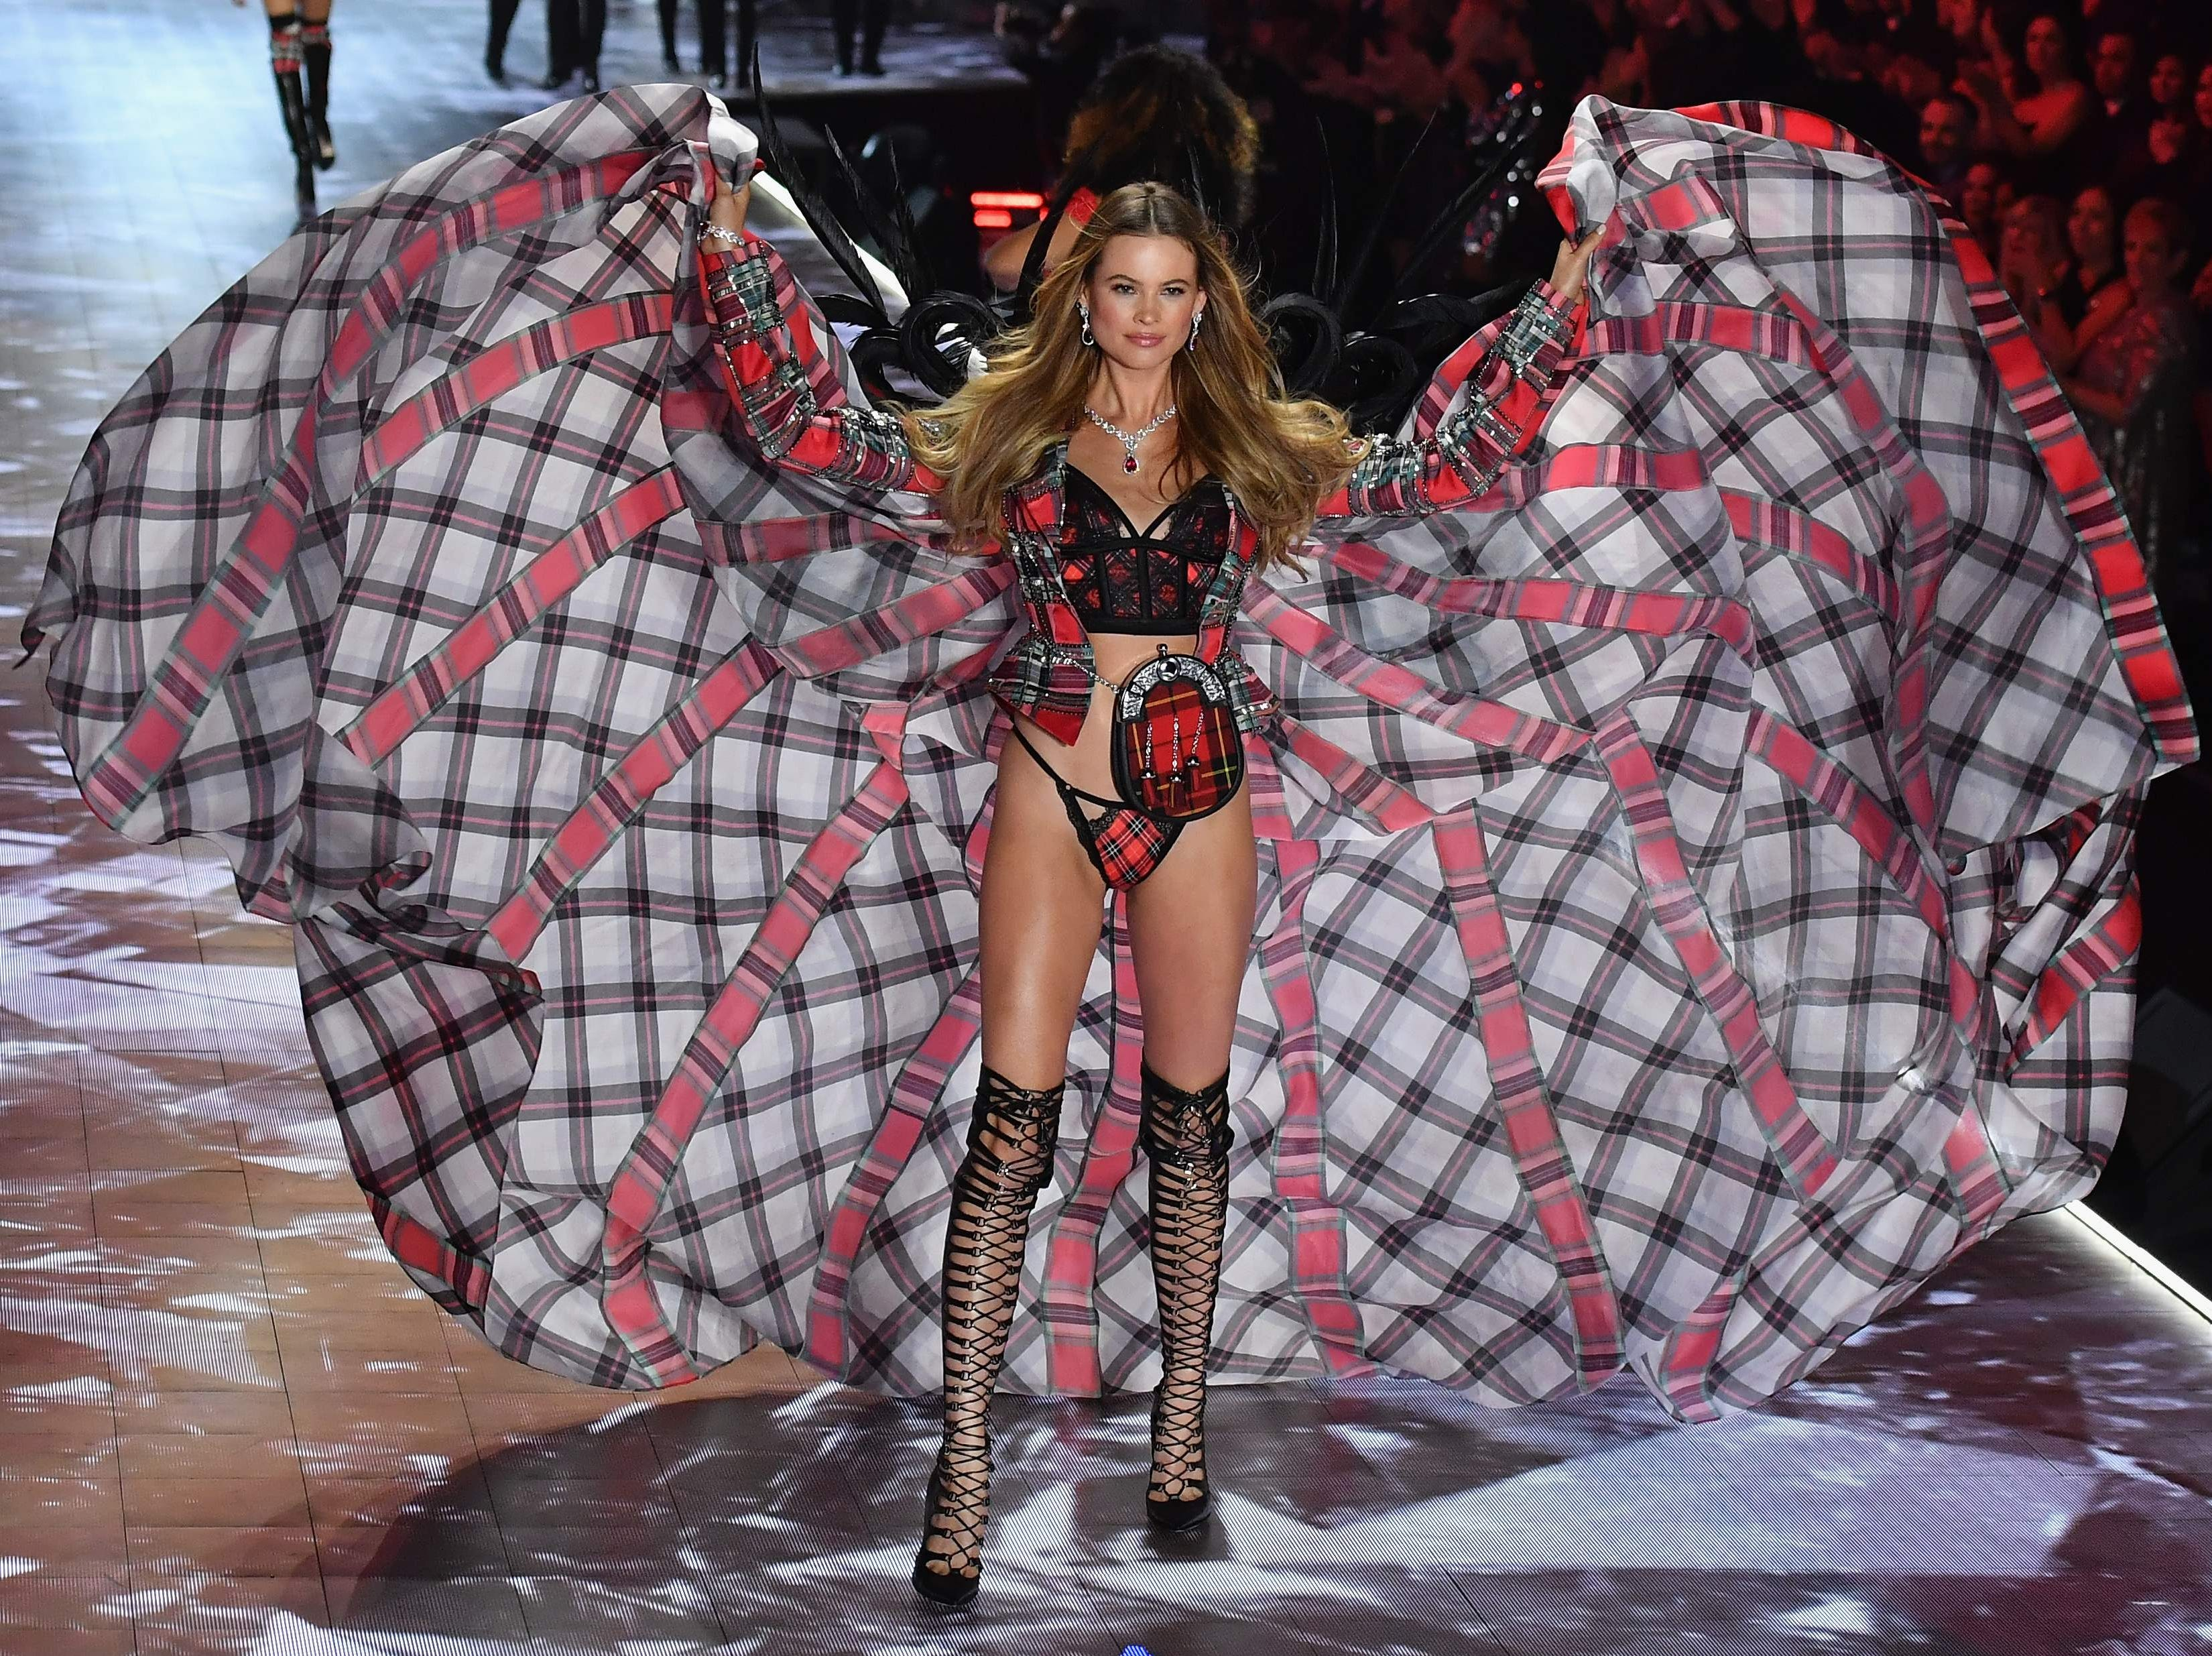 Namibian Model Behati Prinsloo walks the runway at the 2018 Victoria's Secret Fashion Show on November 8, 2018 at Pier 94 in New York City. - Every year, the Victoria's Secret show brings its famous models together for what is consistently a glittery catwalk extravaganza. It's the most-watched fashion event of the year (800 million tune in annually) with around 12 million USD spent on putting the spectacle together according to Harper's Bazaar. (Photo by Angela Weiss / AFP)ANGELA WEISS/AFP/Getty Images ORIG FILE ID: AFP_1AP07E